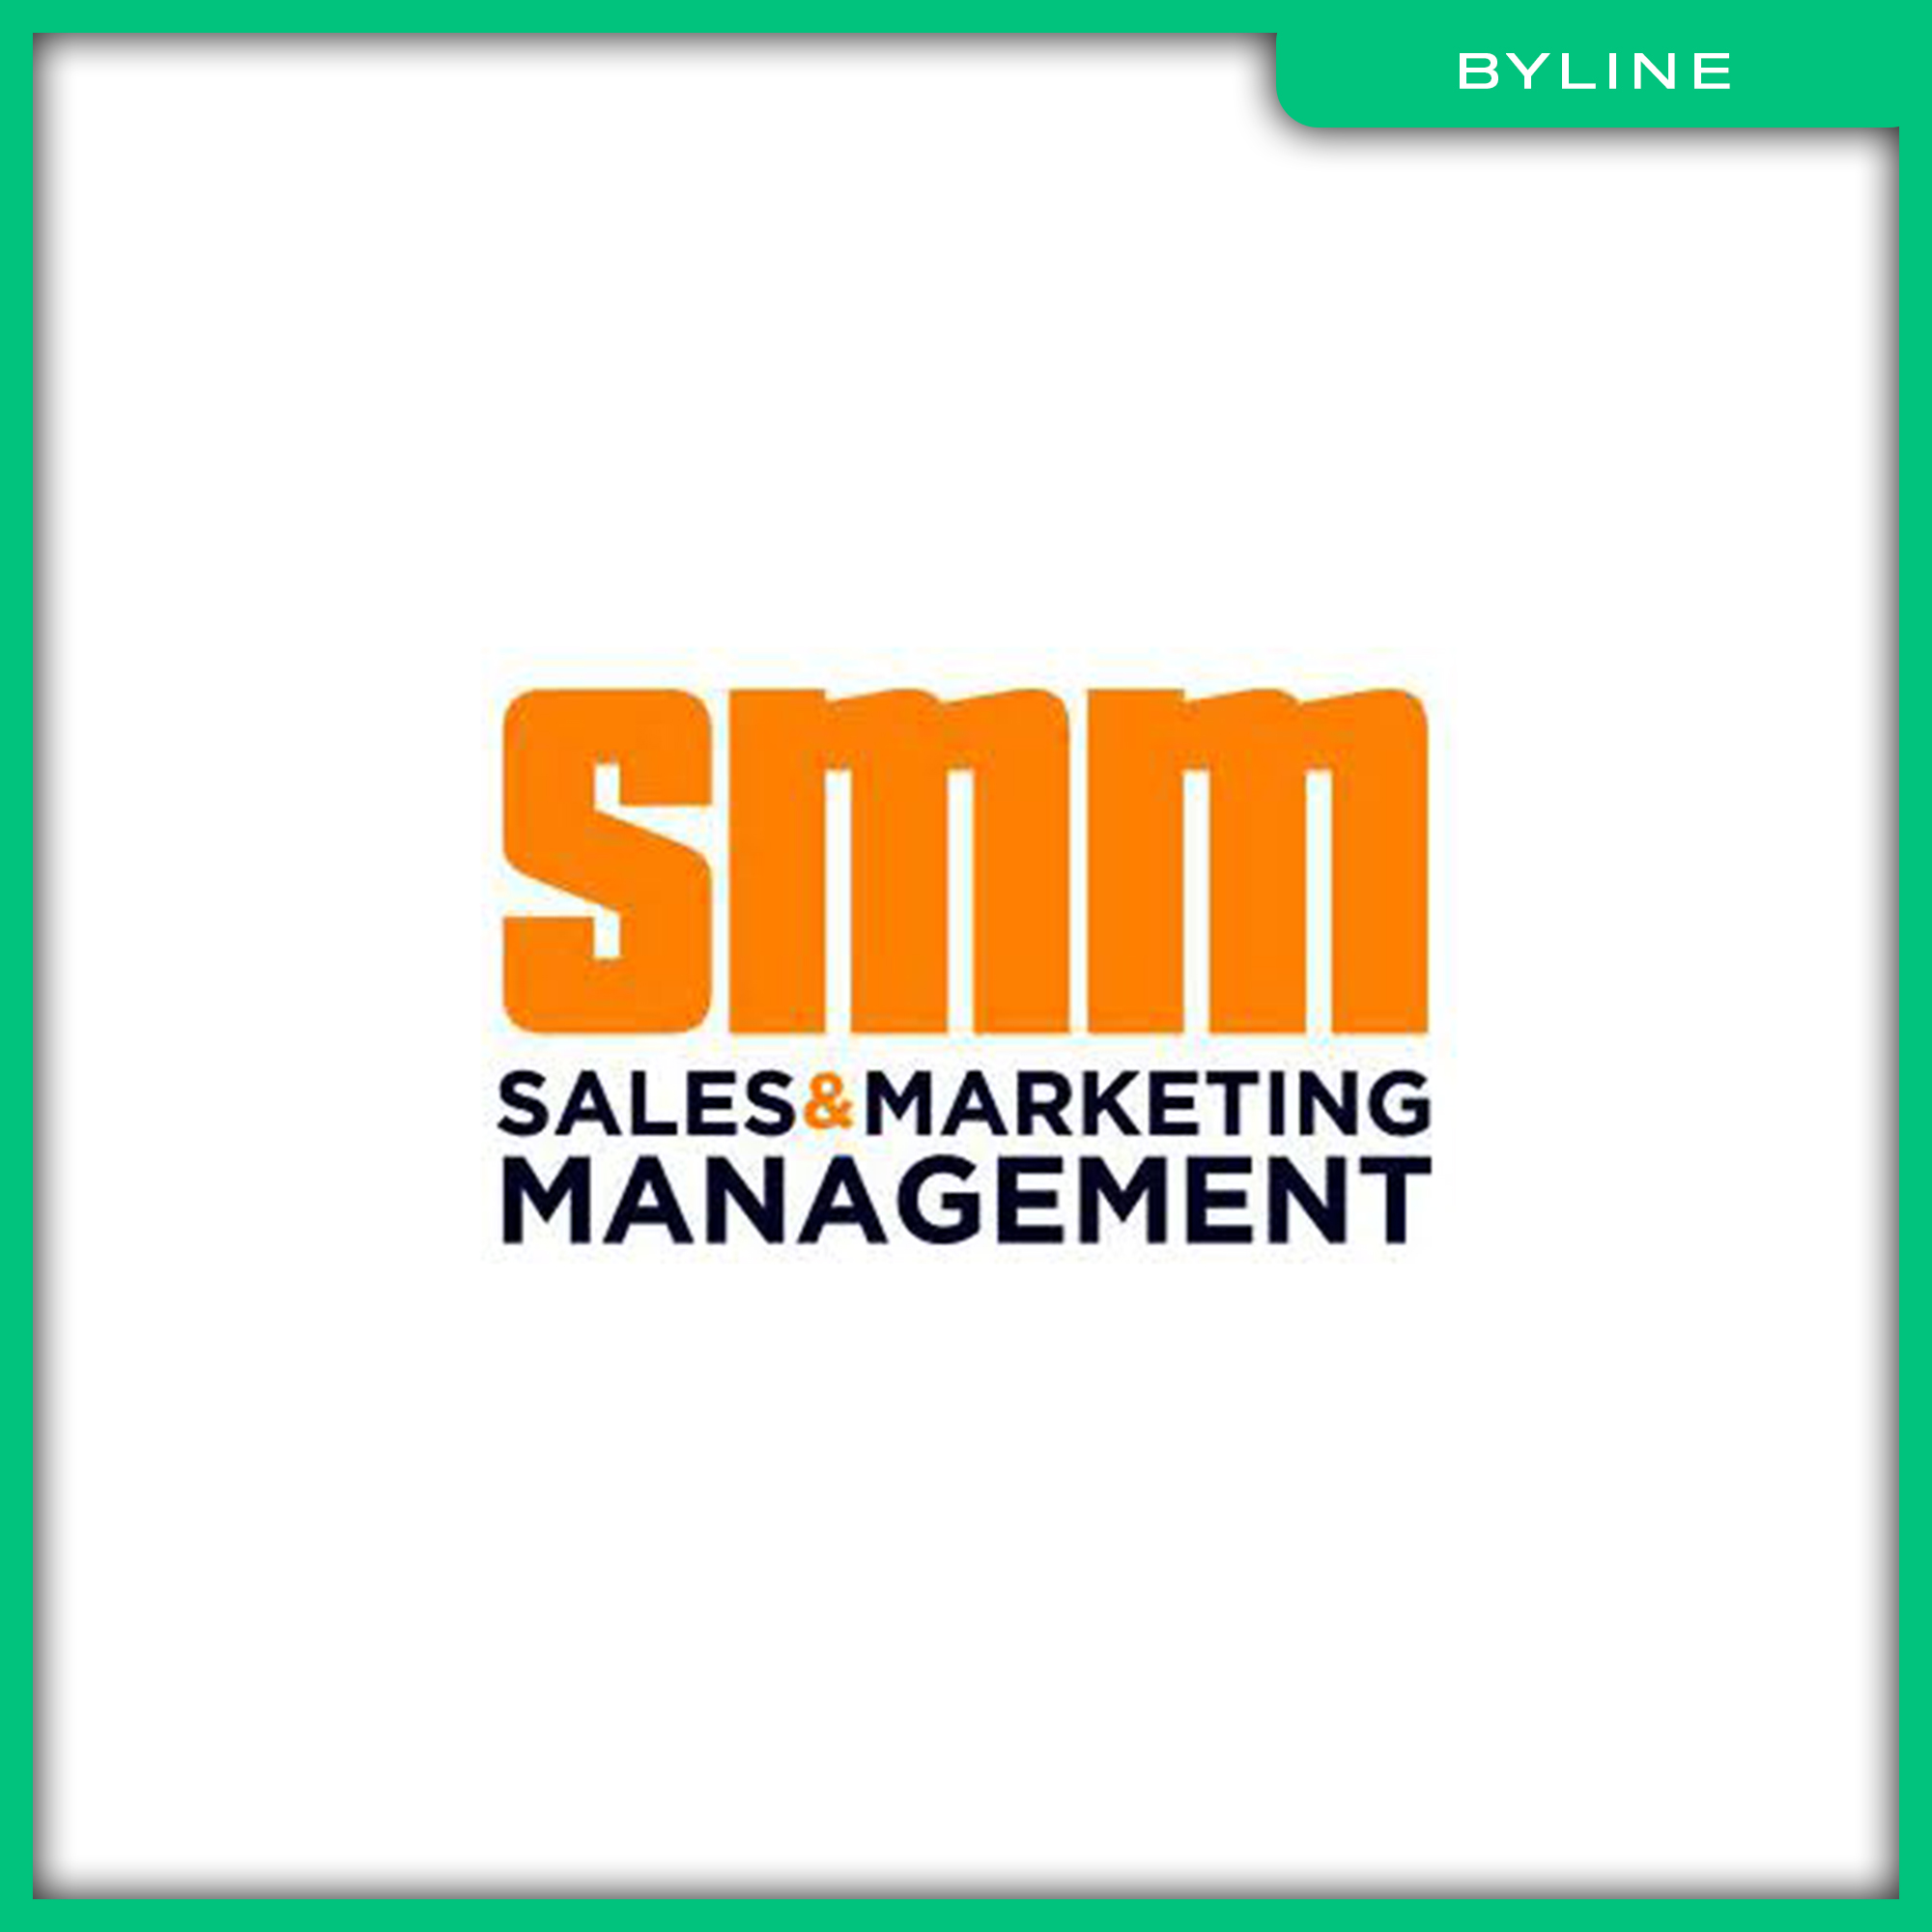 13-Byline--Sales-&-Marketing-Management--How-Podcasting-Can-Engage-B2B-Buyers-